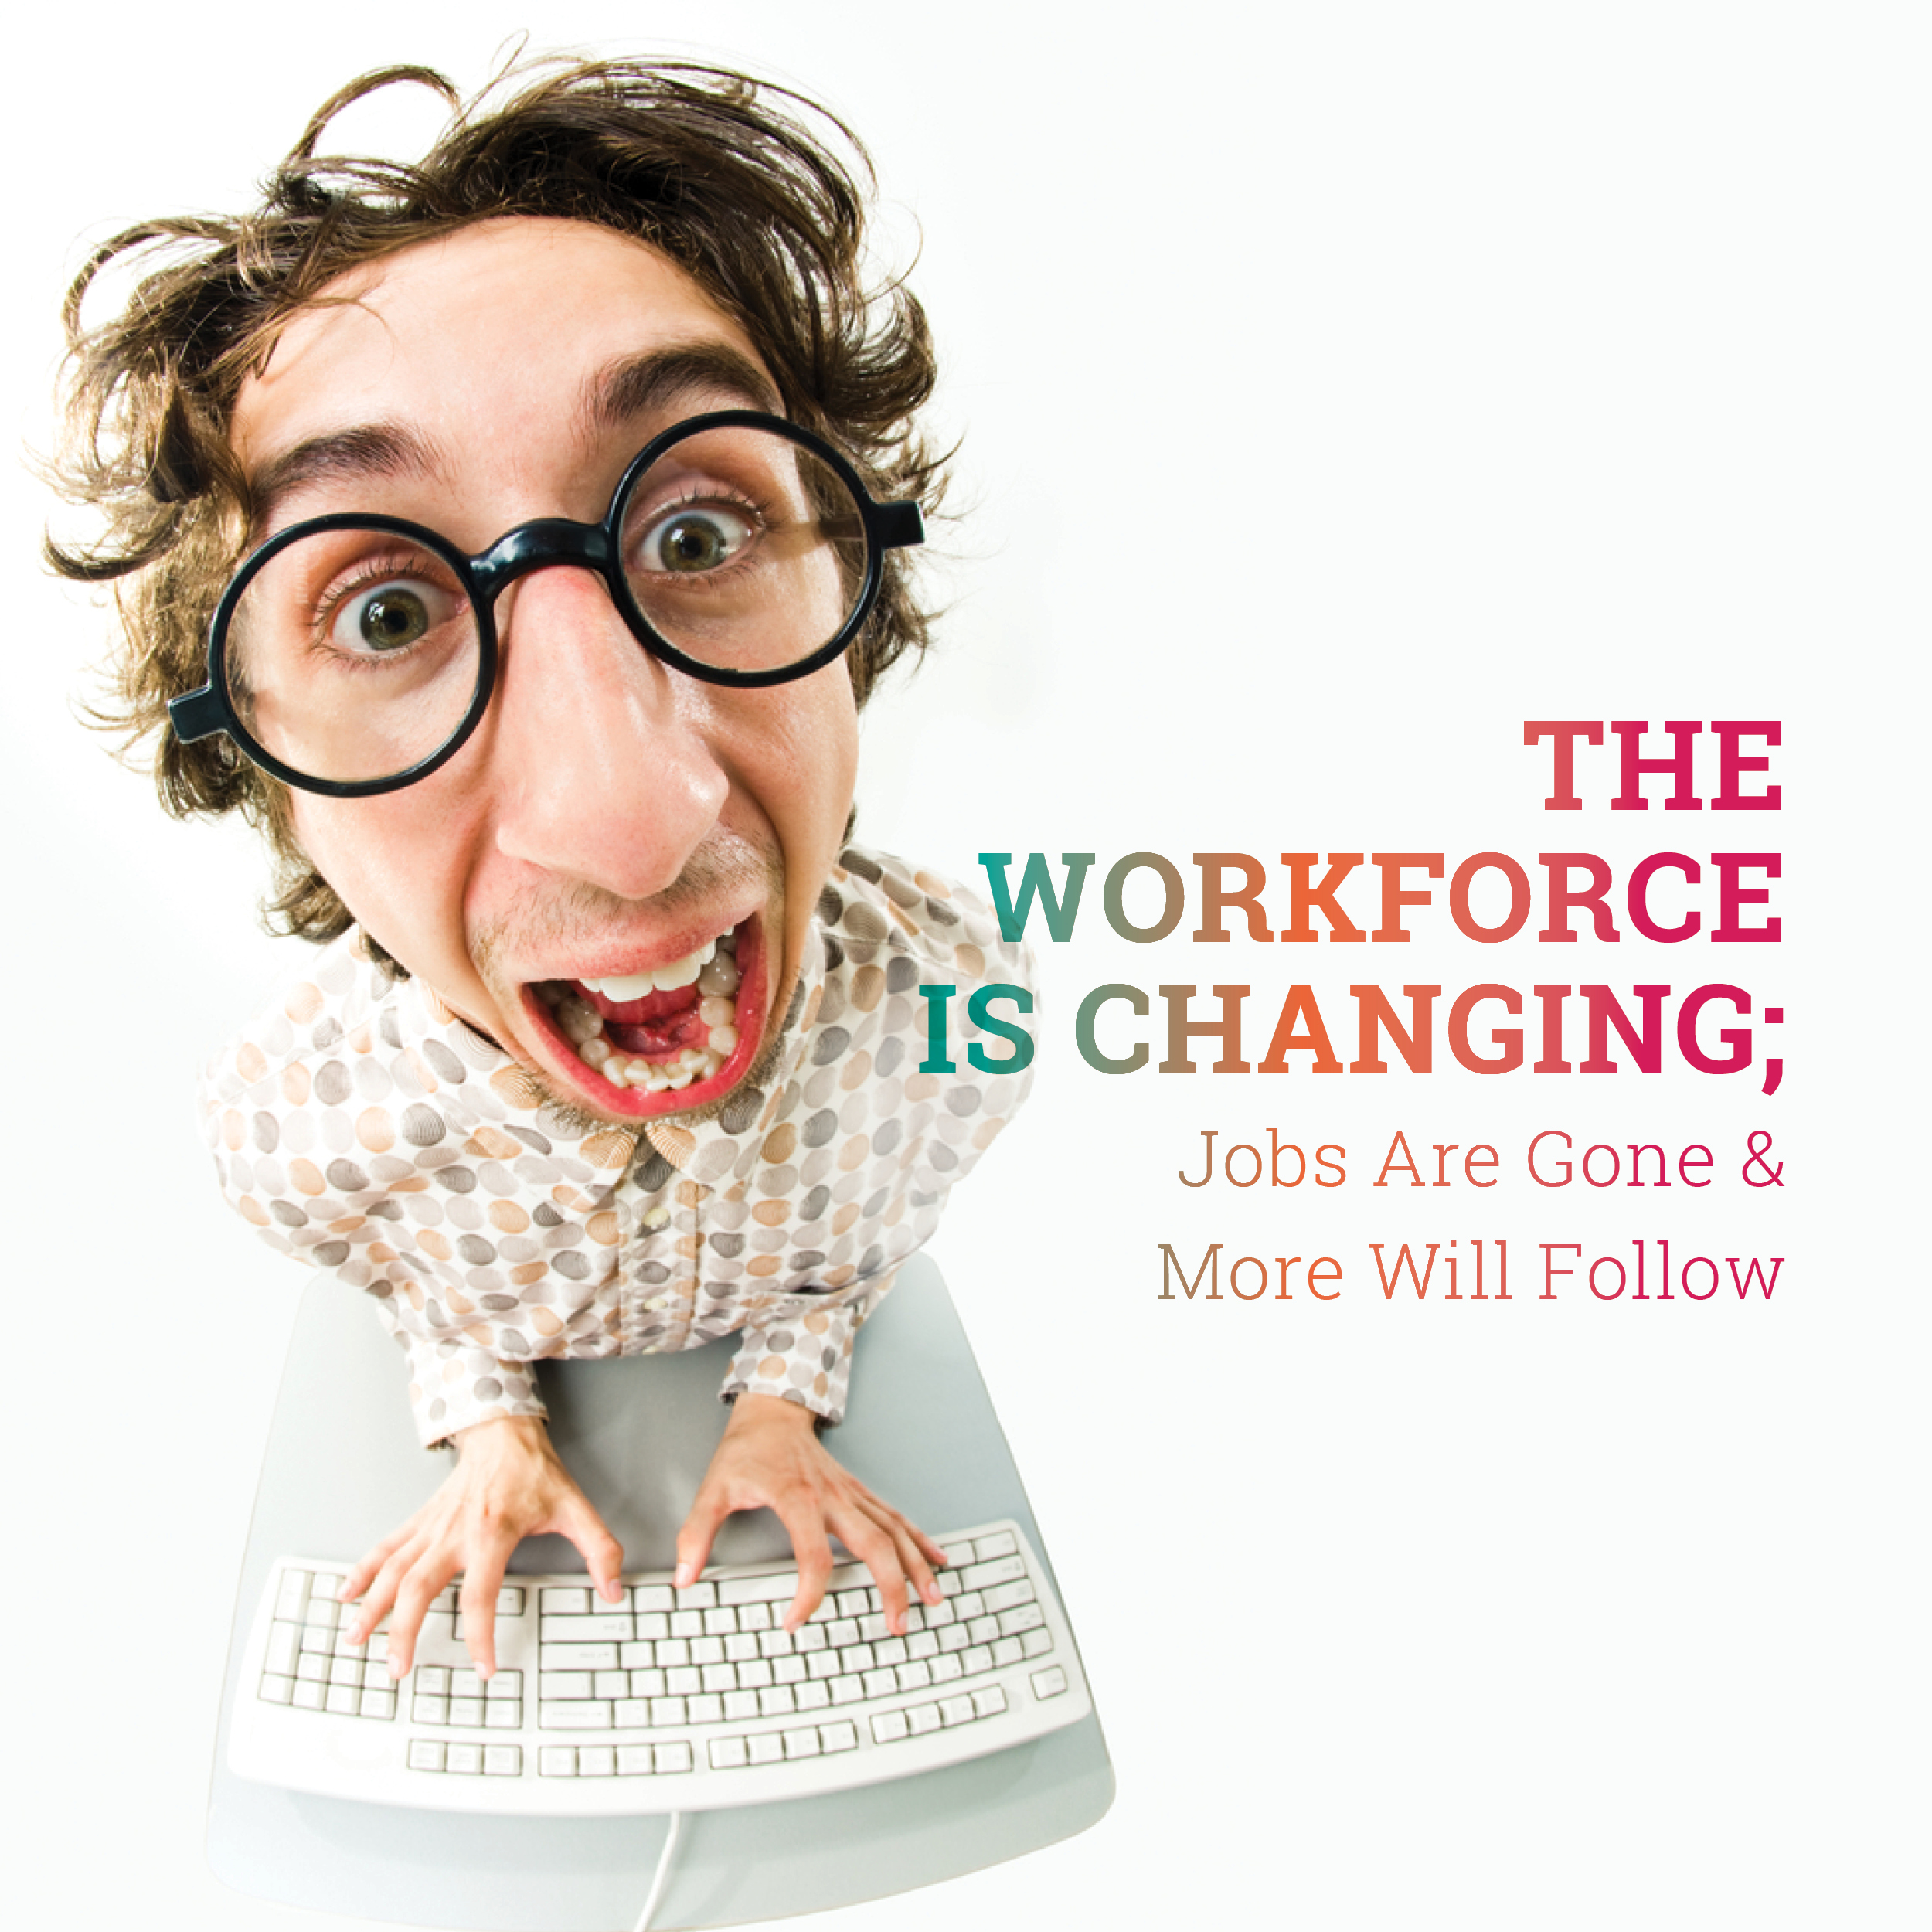 The Workforce is Changing